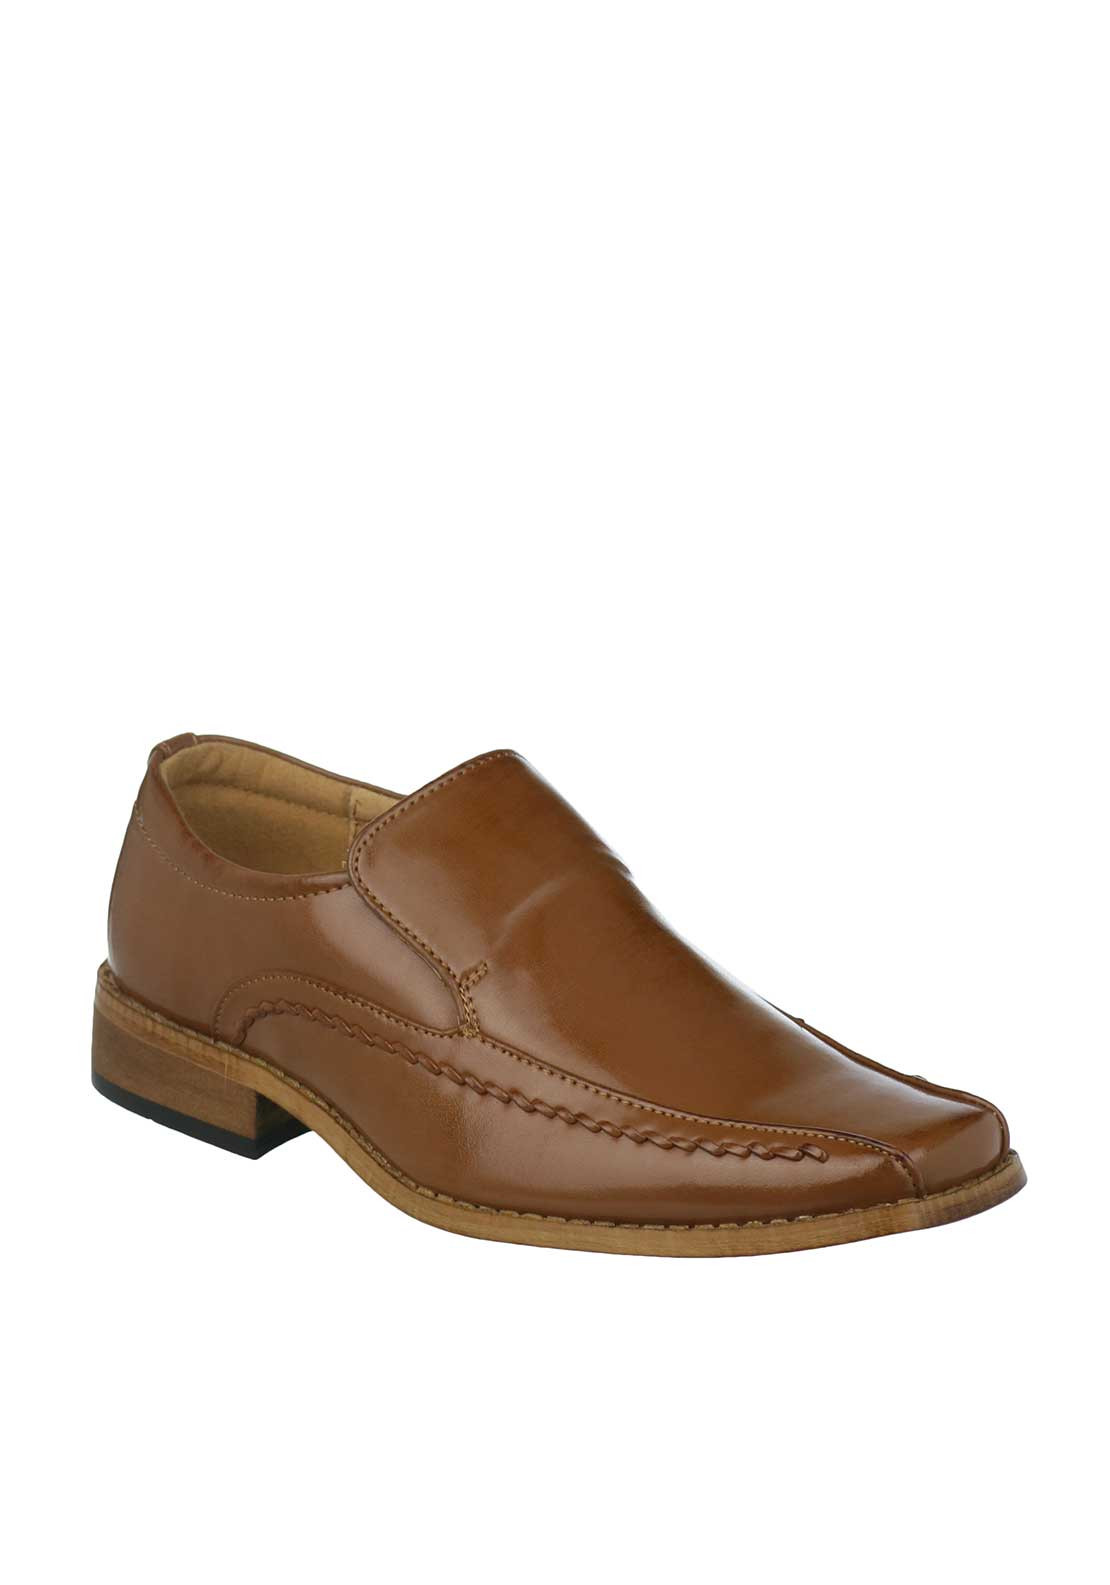 Goor Boys Formal Patent Loafer Shoe, Tan